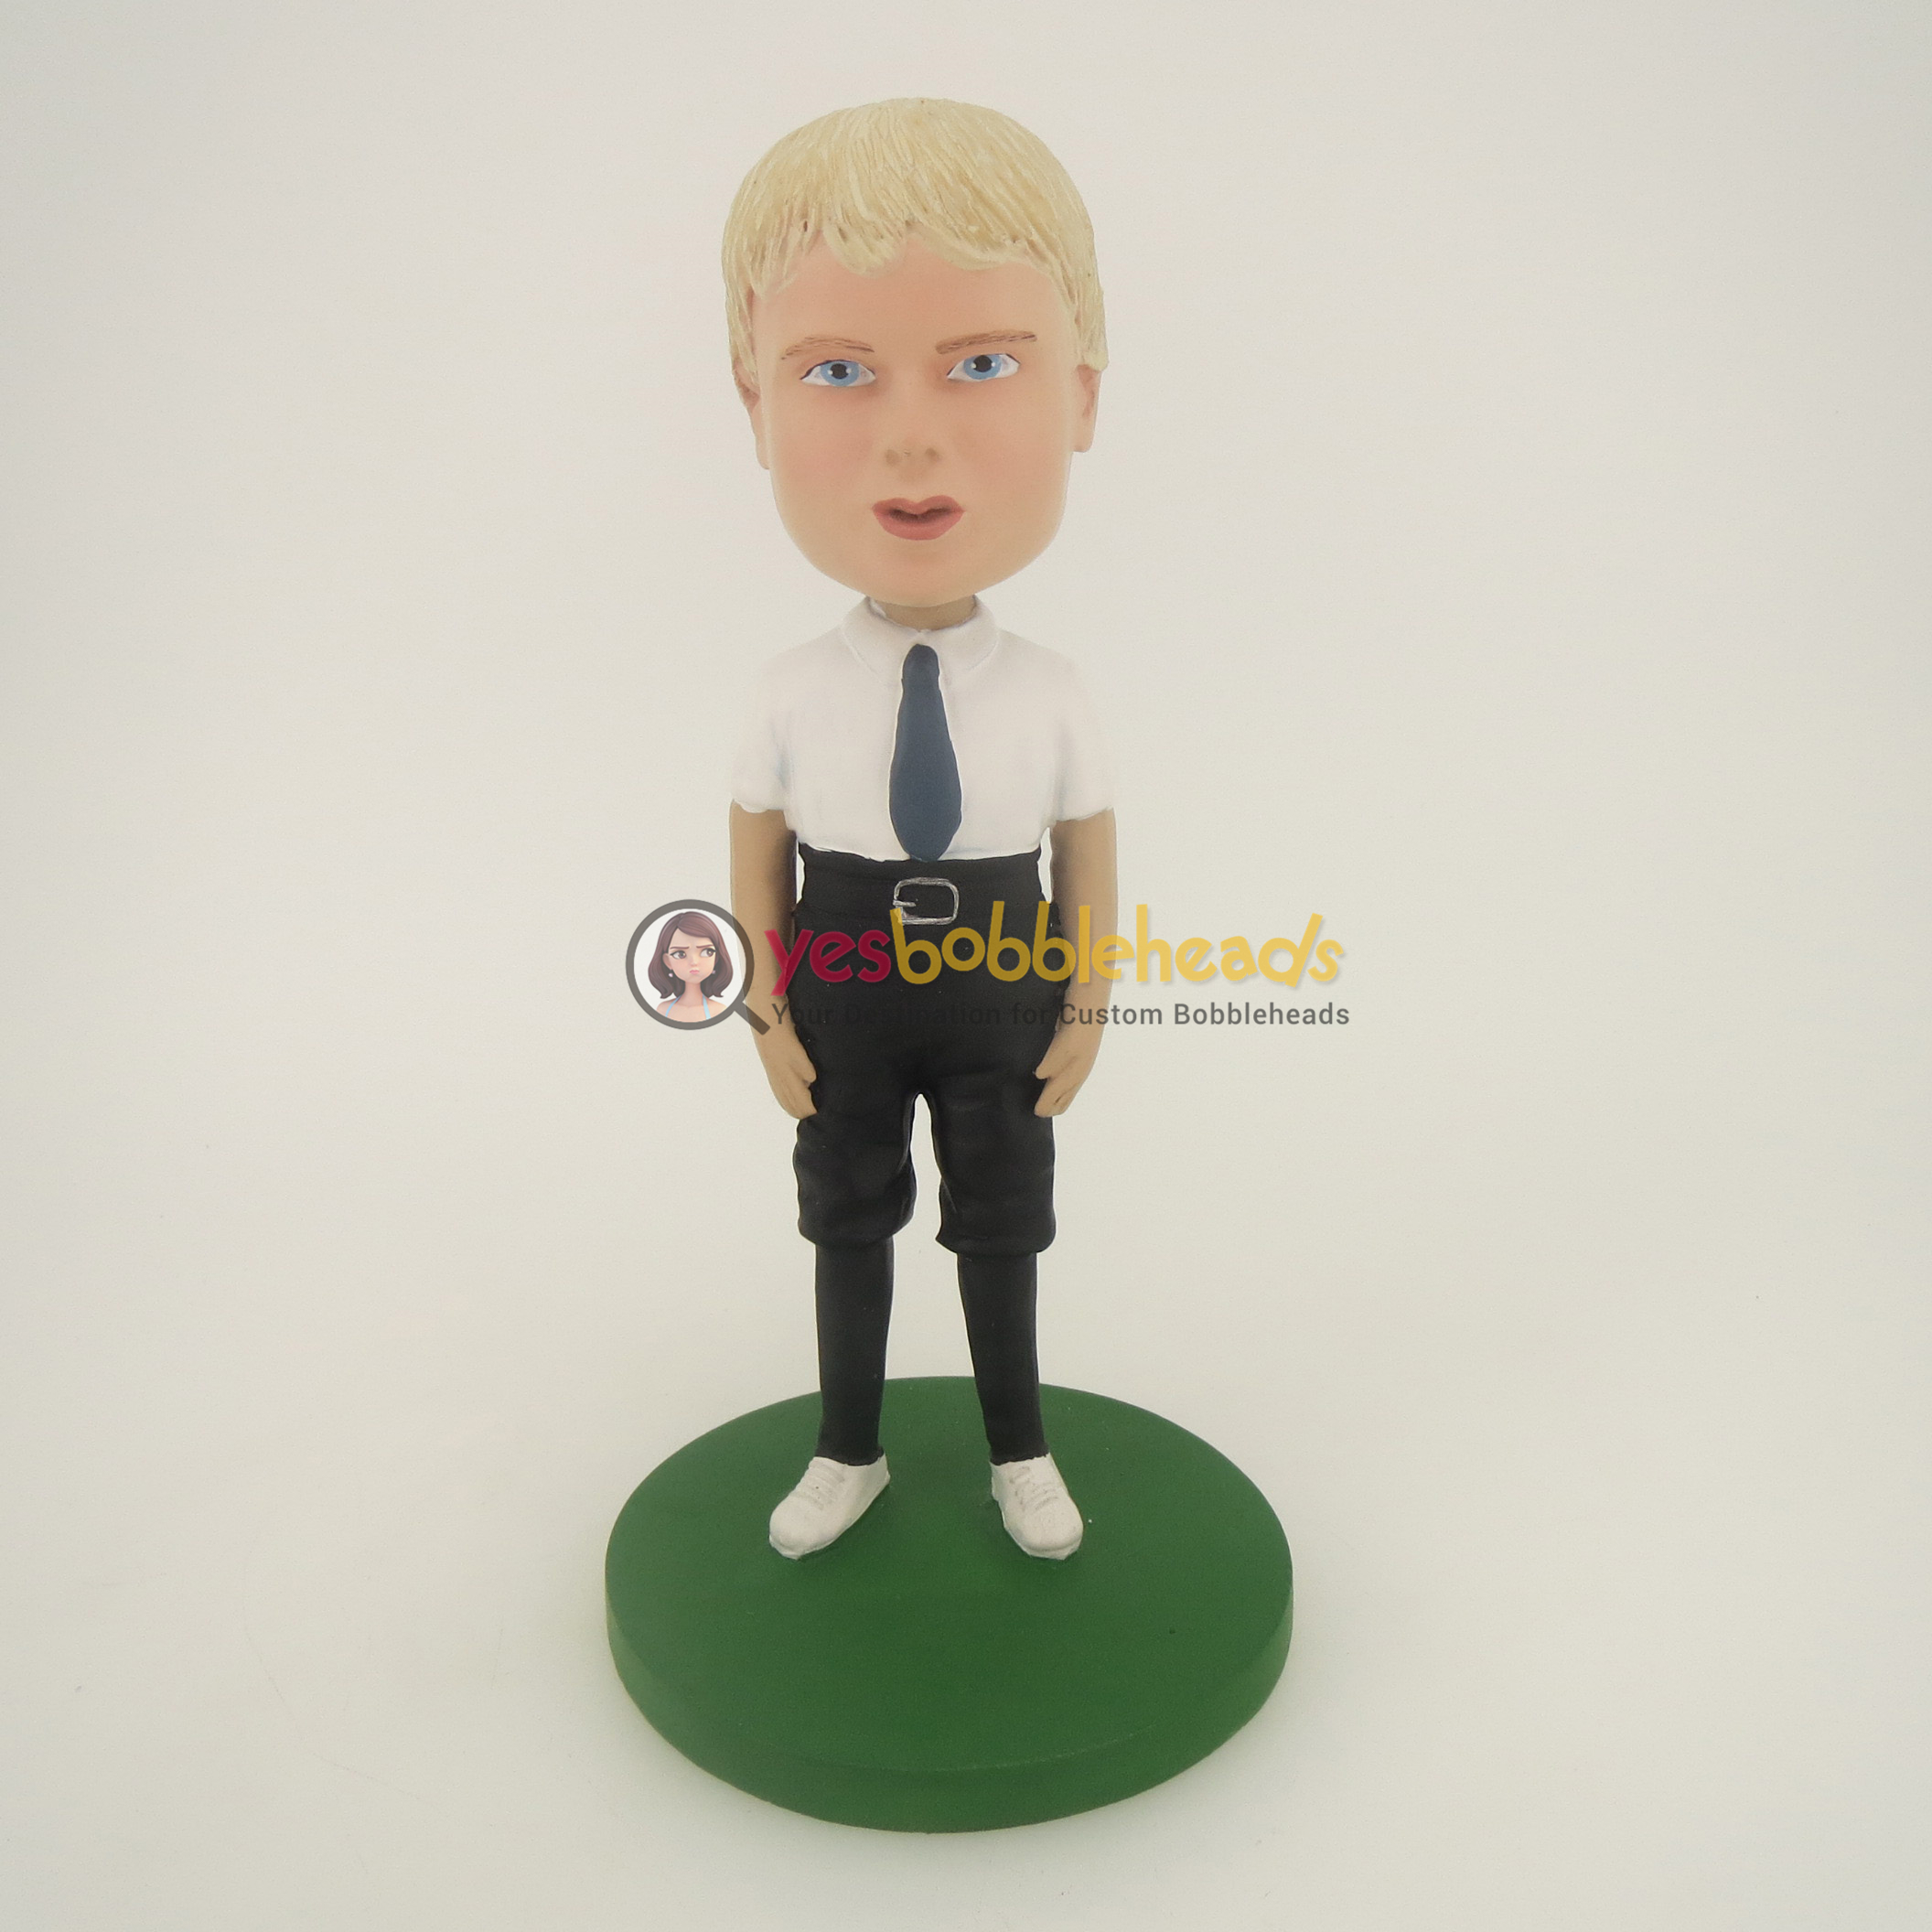 Picture of Custom Bobblehead Doll: Man With White TShirt And Short Jeans